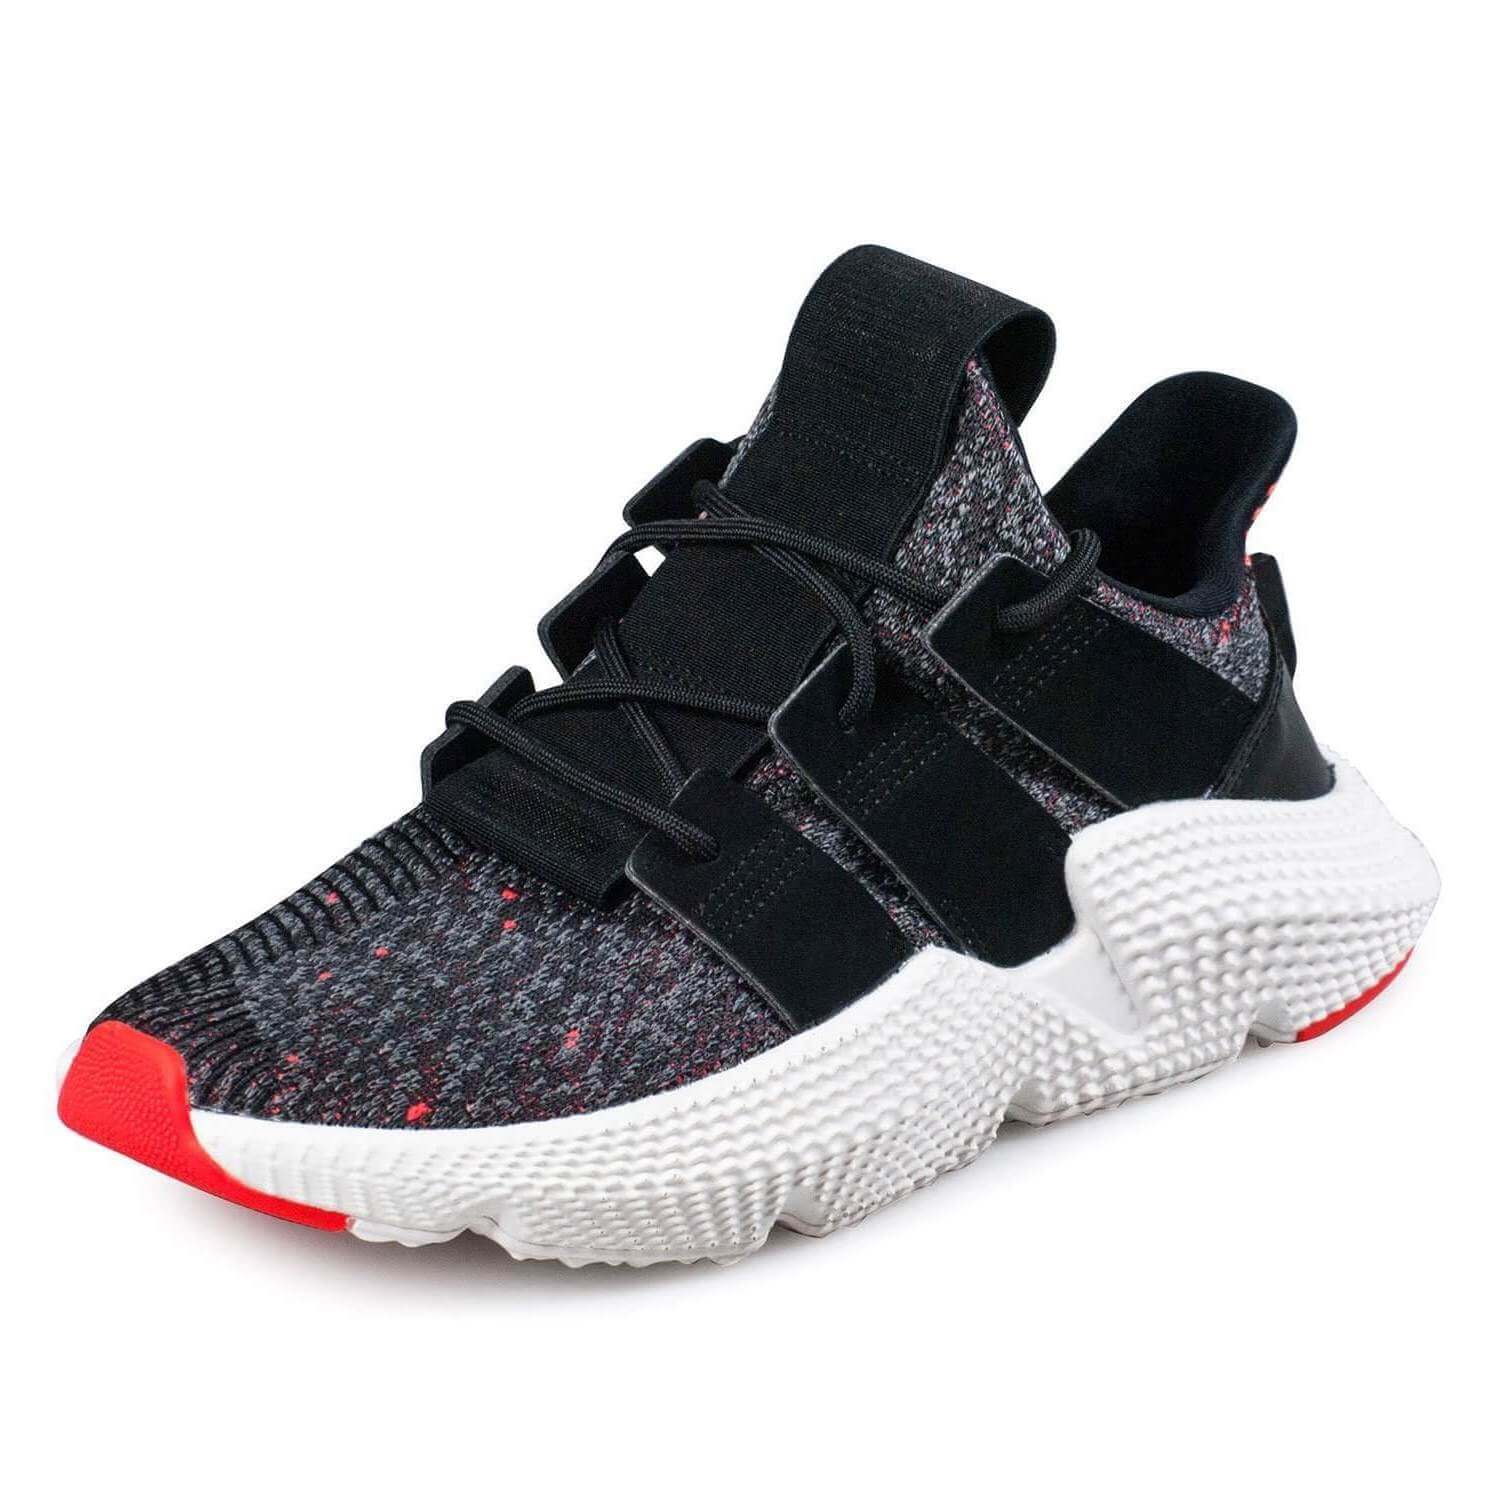 Marty Fielding Caballero amable Gobernador  Adidas Prophere Fully Reviewed and Compared | RunnerClick